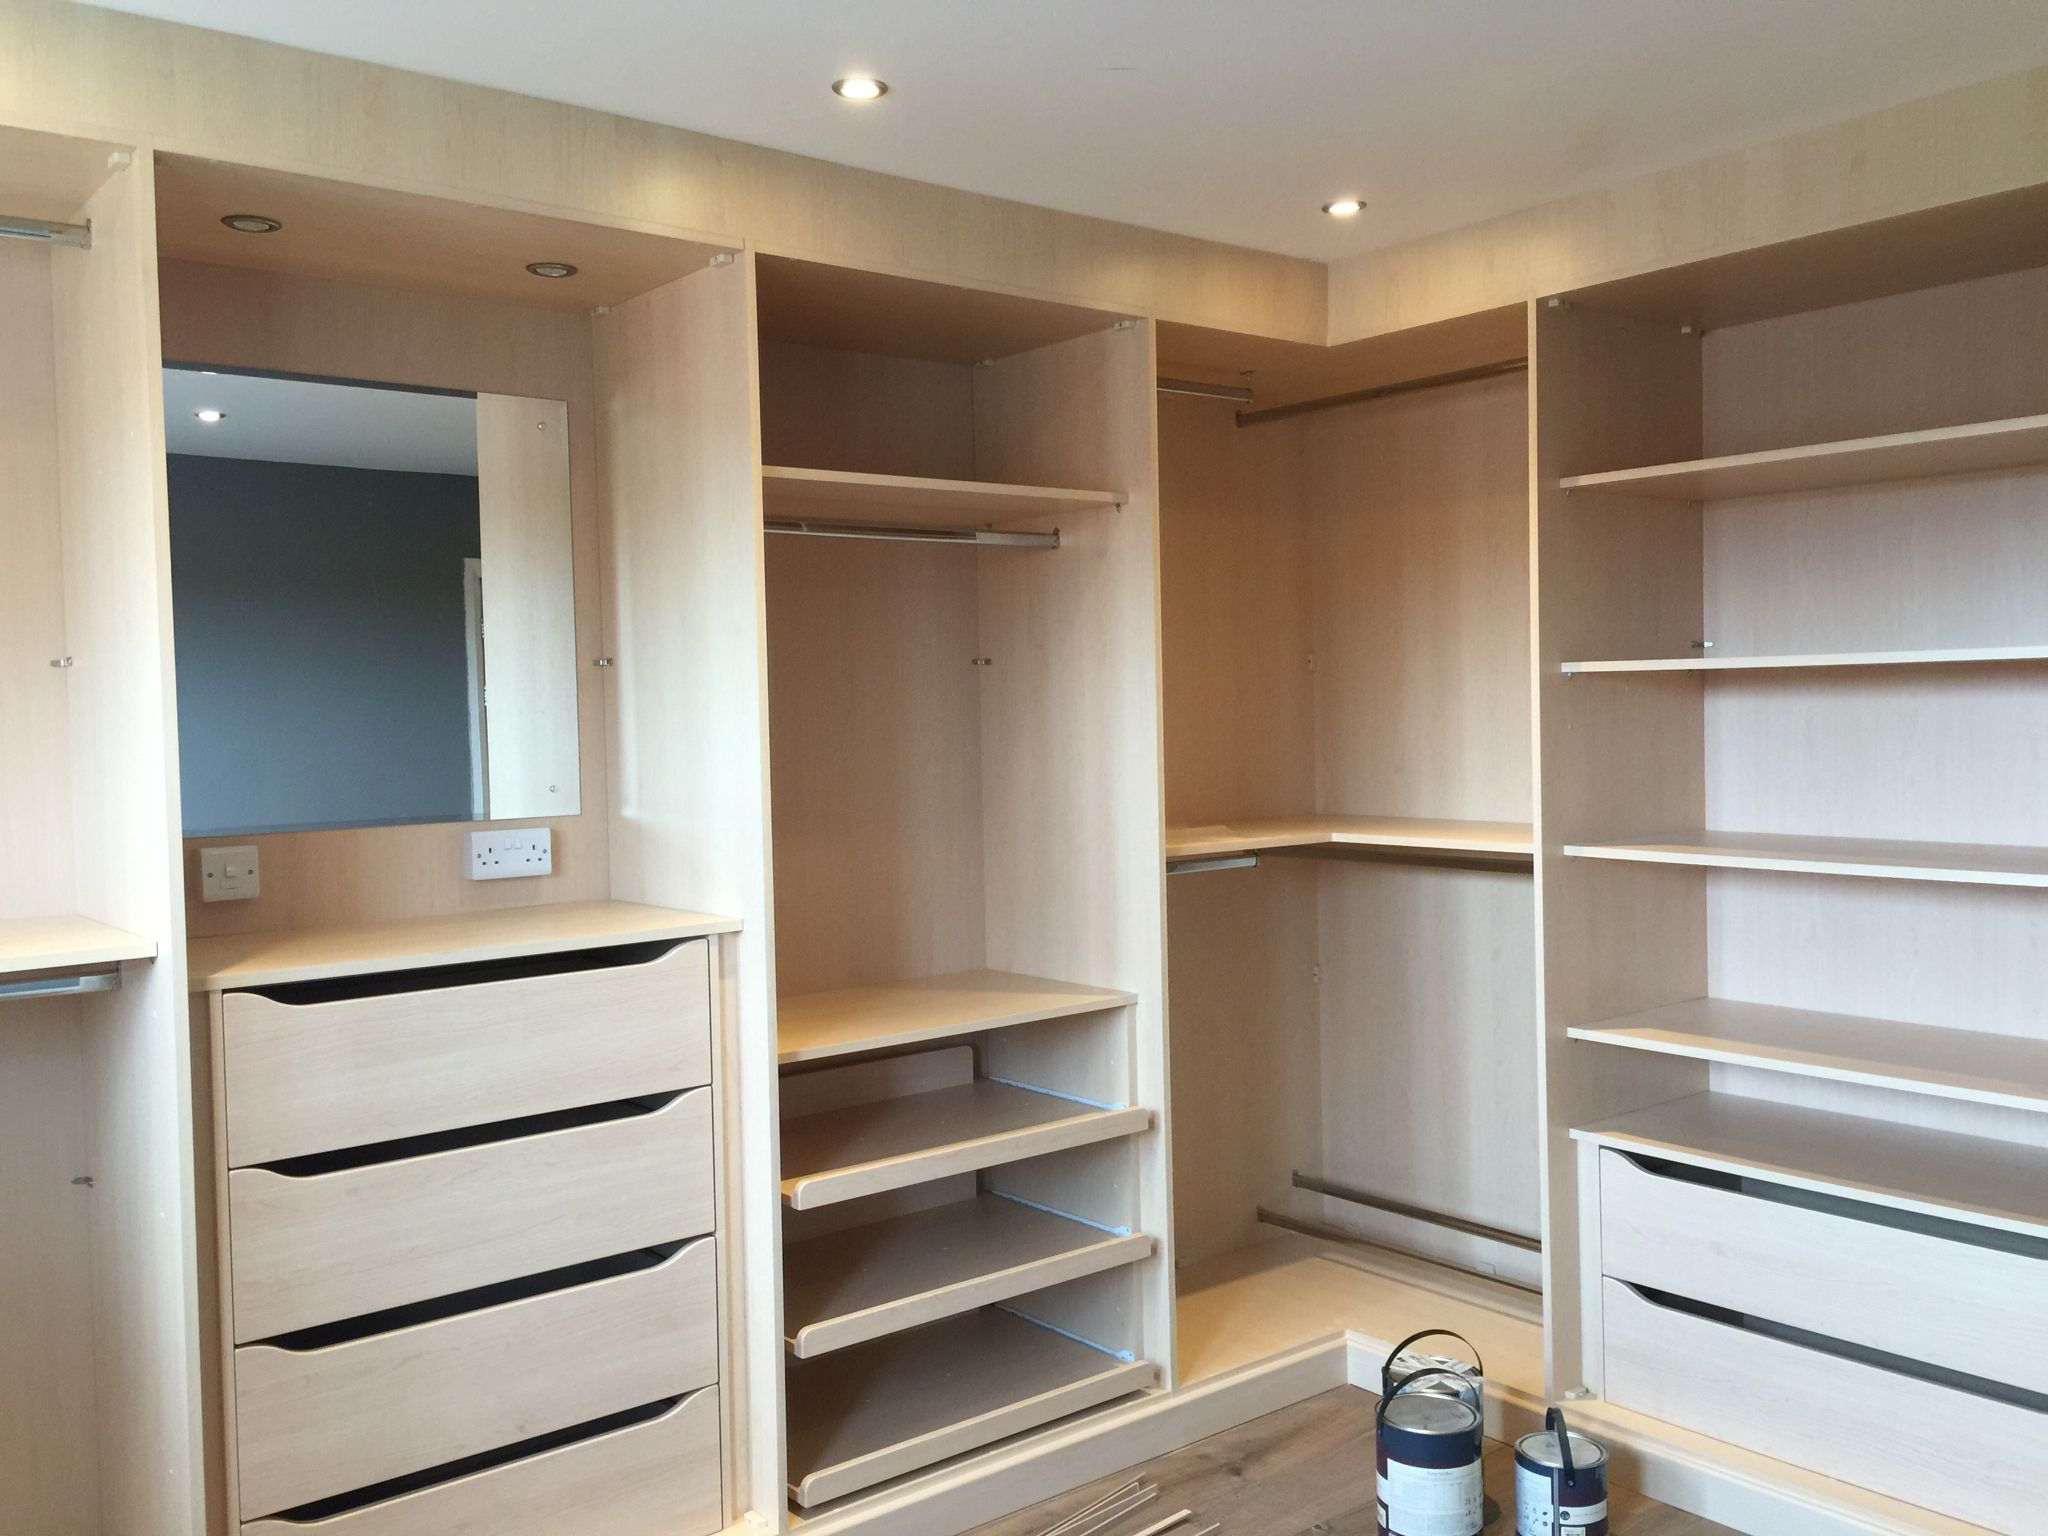 John Lewis Fitted Walk In Robe Very Happy With These Jl Don T Let It Easily Be Known That They Do Robes Walk In Robe Bedroom Cupboard Designs Wardrobe Room